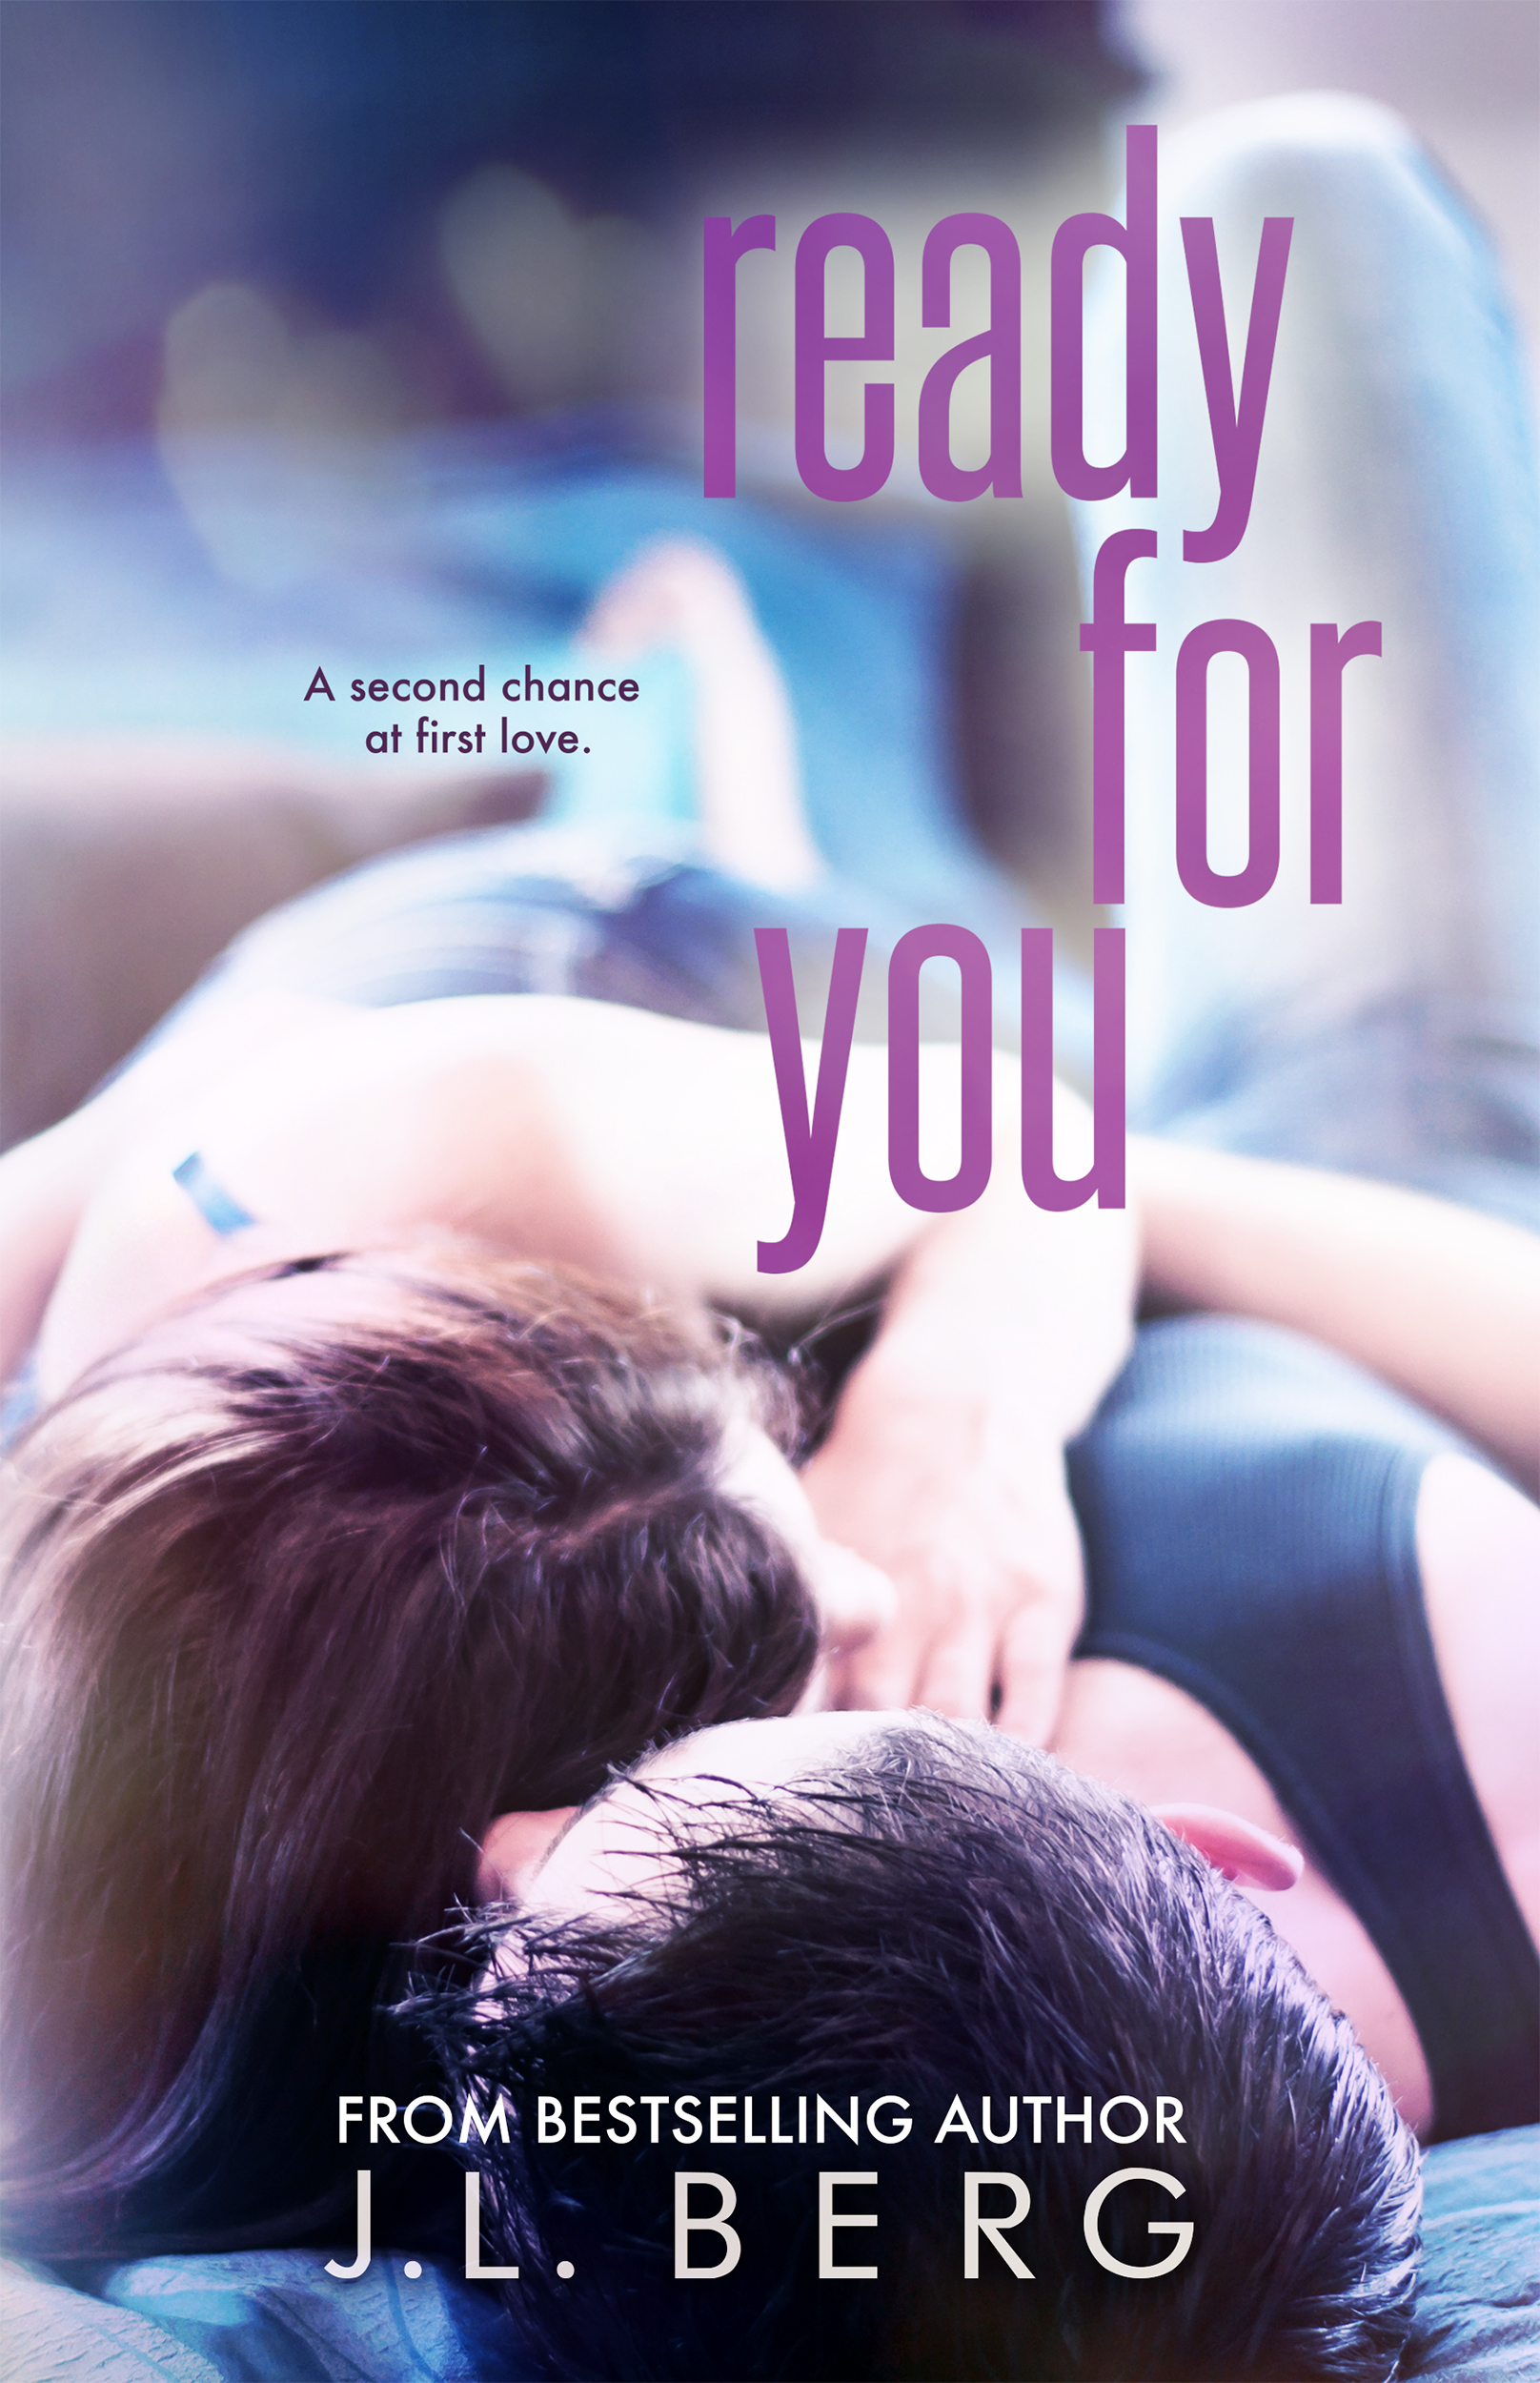 Ready for You by J.L. Berg